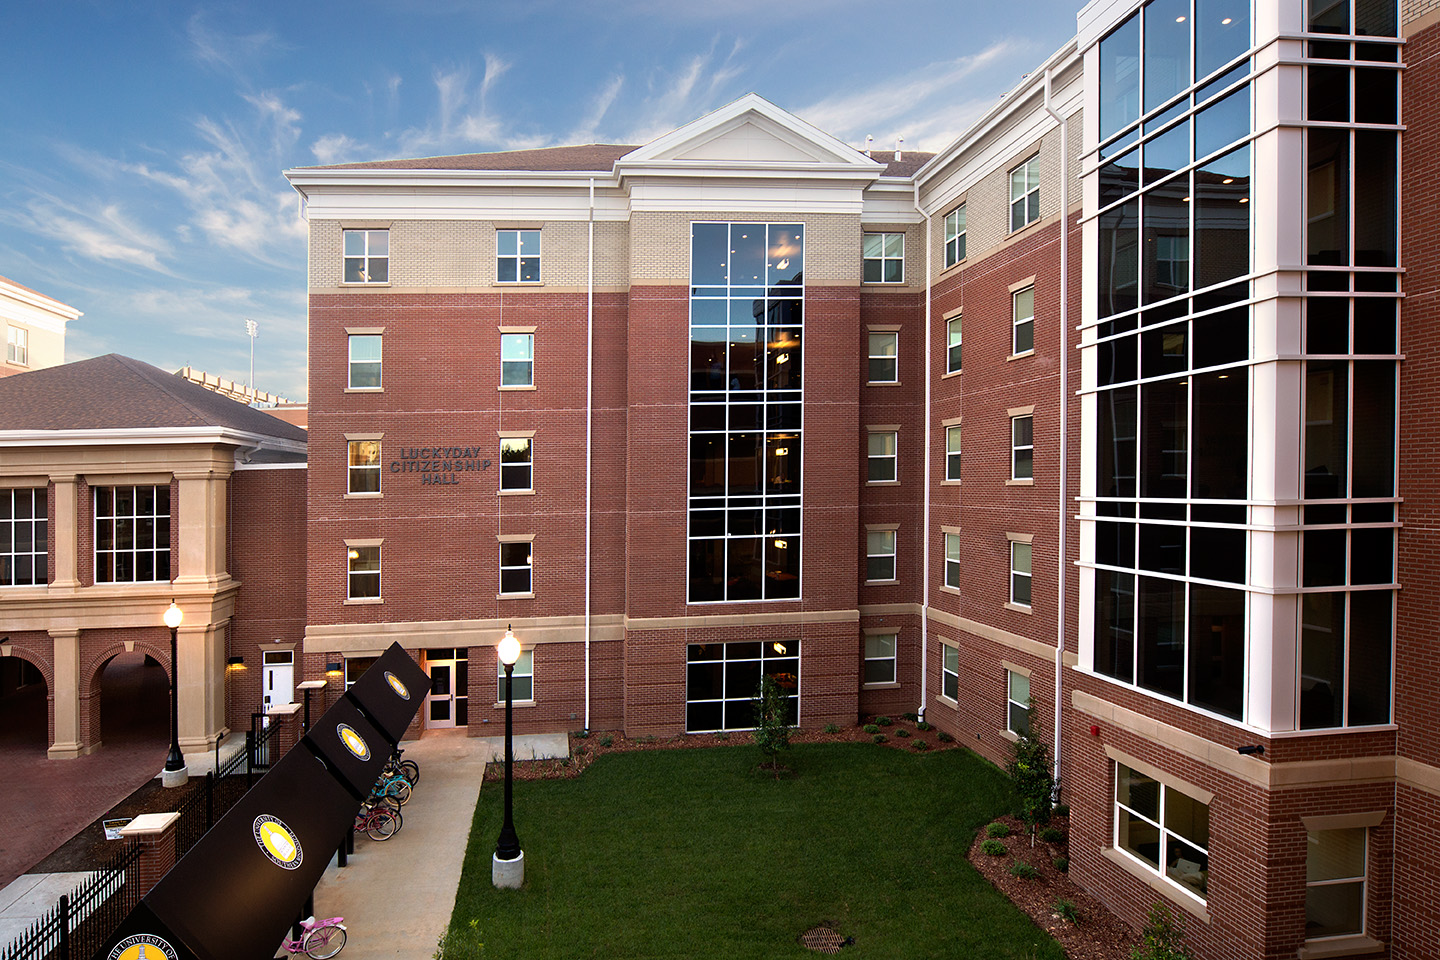 This is a residence hall on campus.